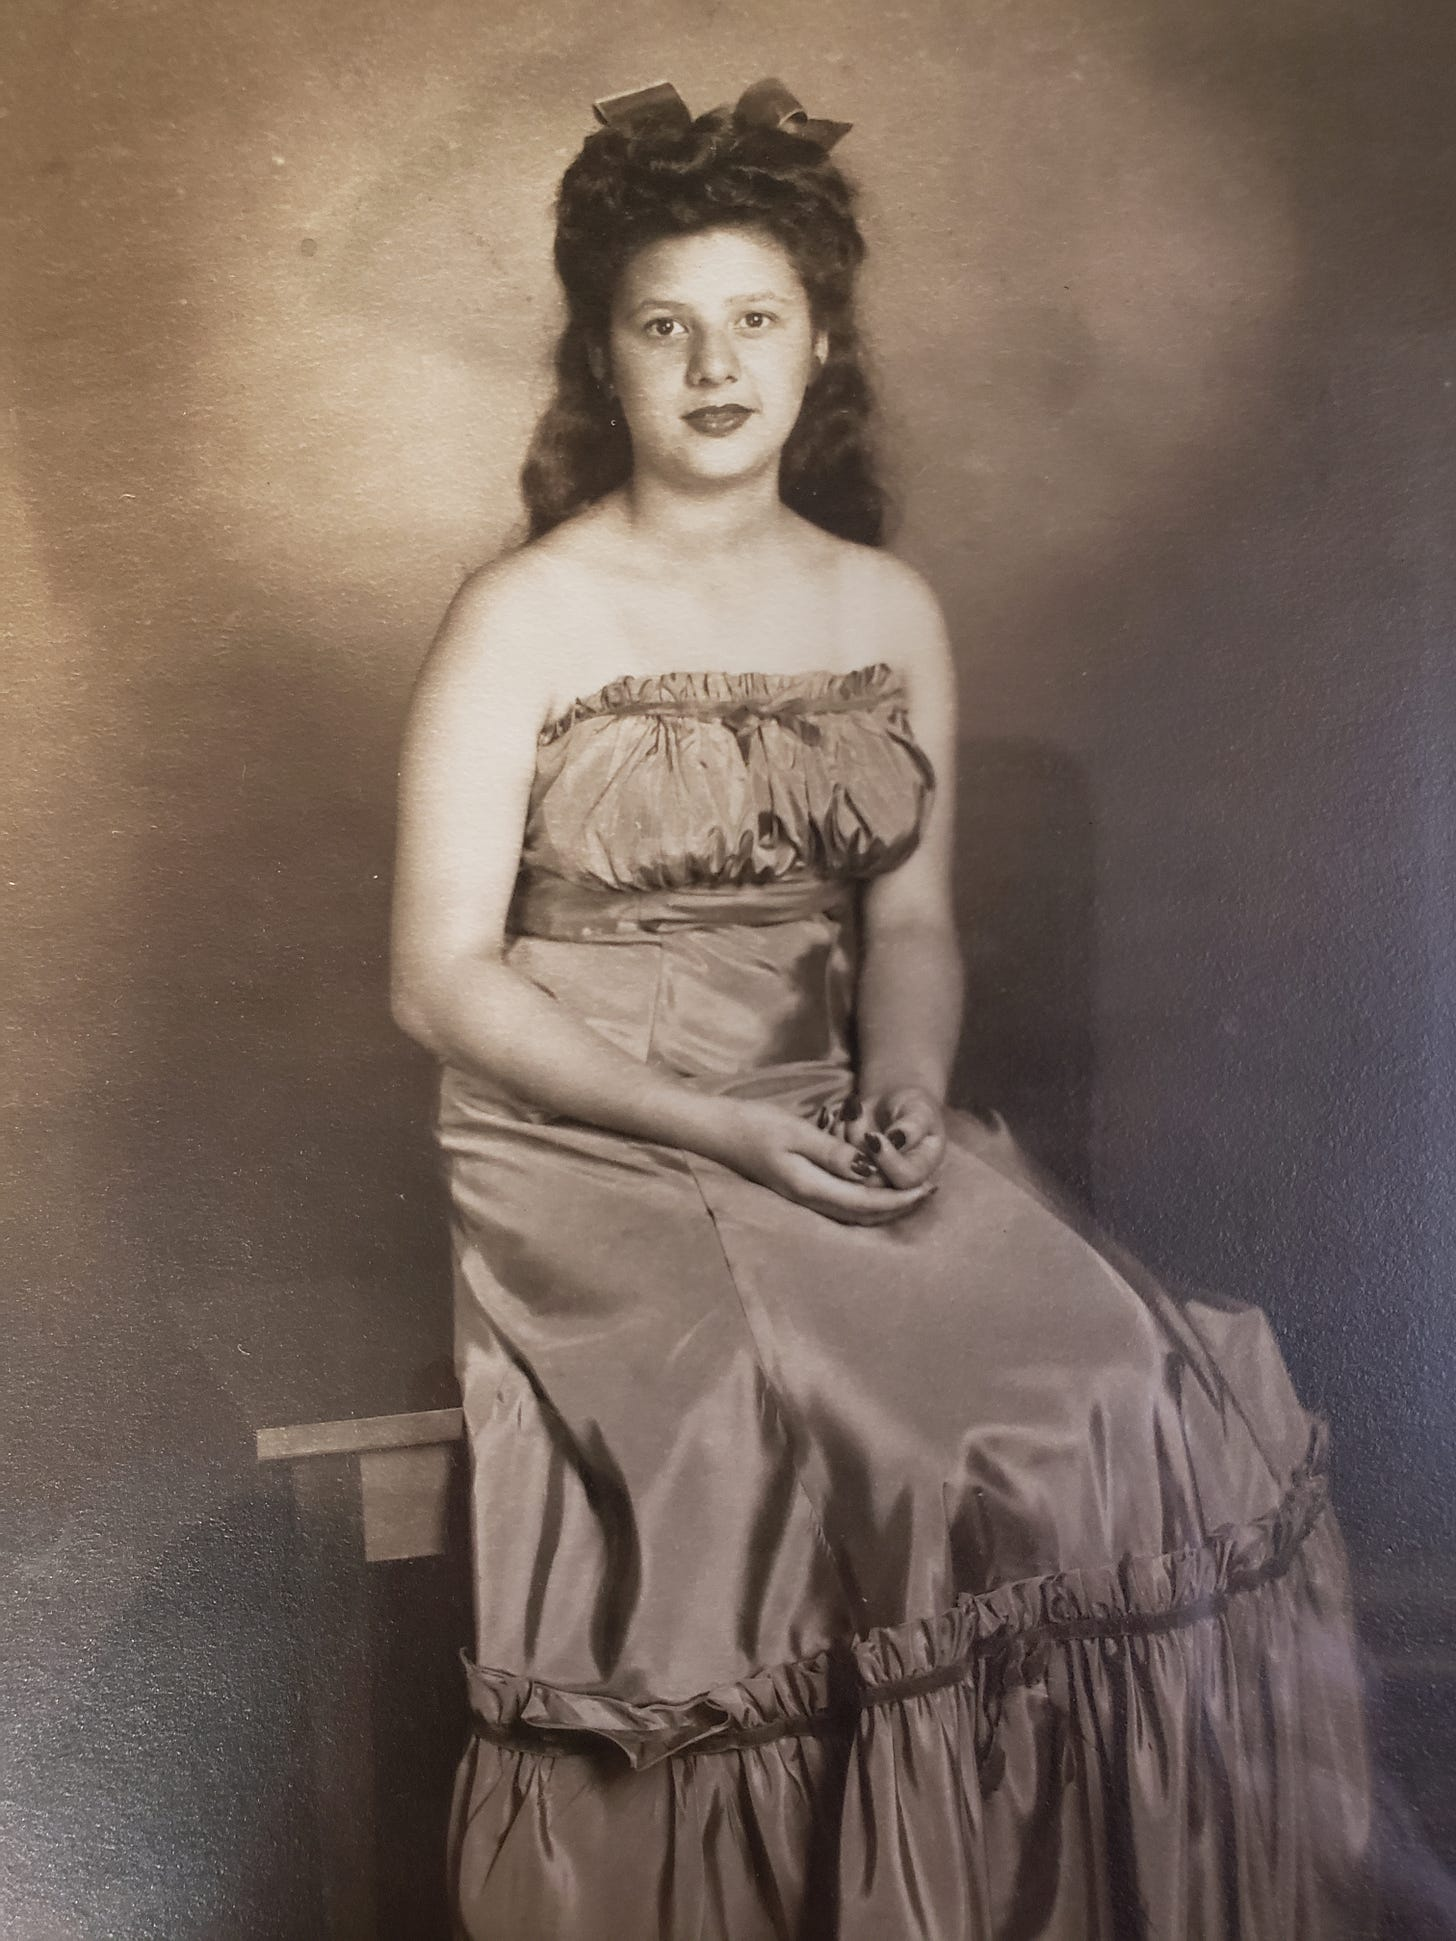 Photograph of Anita Juarez as a young woman, posing in a dress, seated, hands in lap